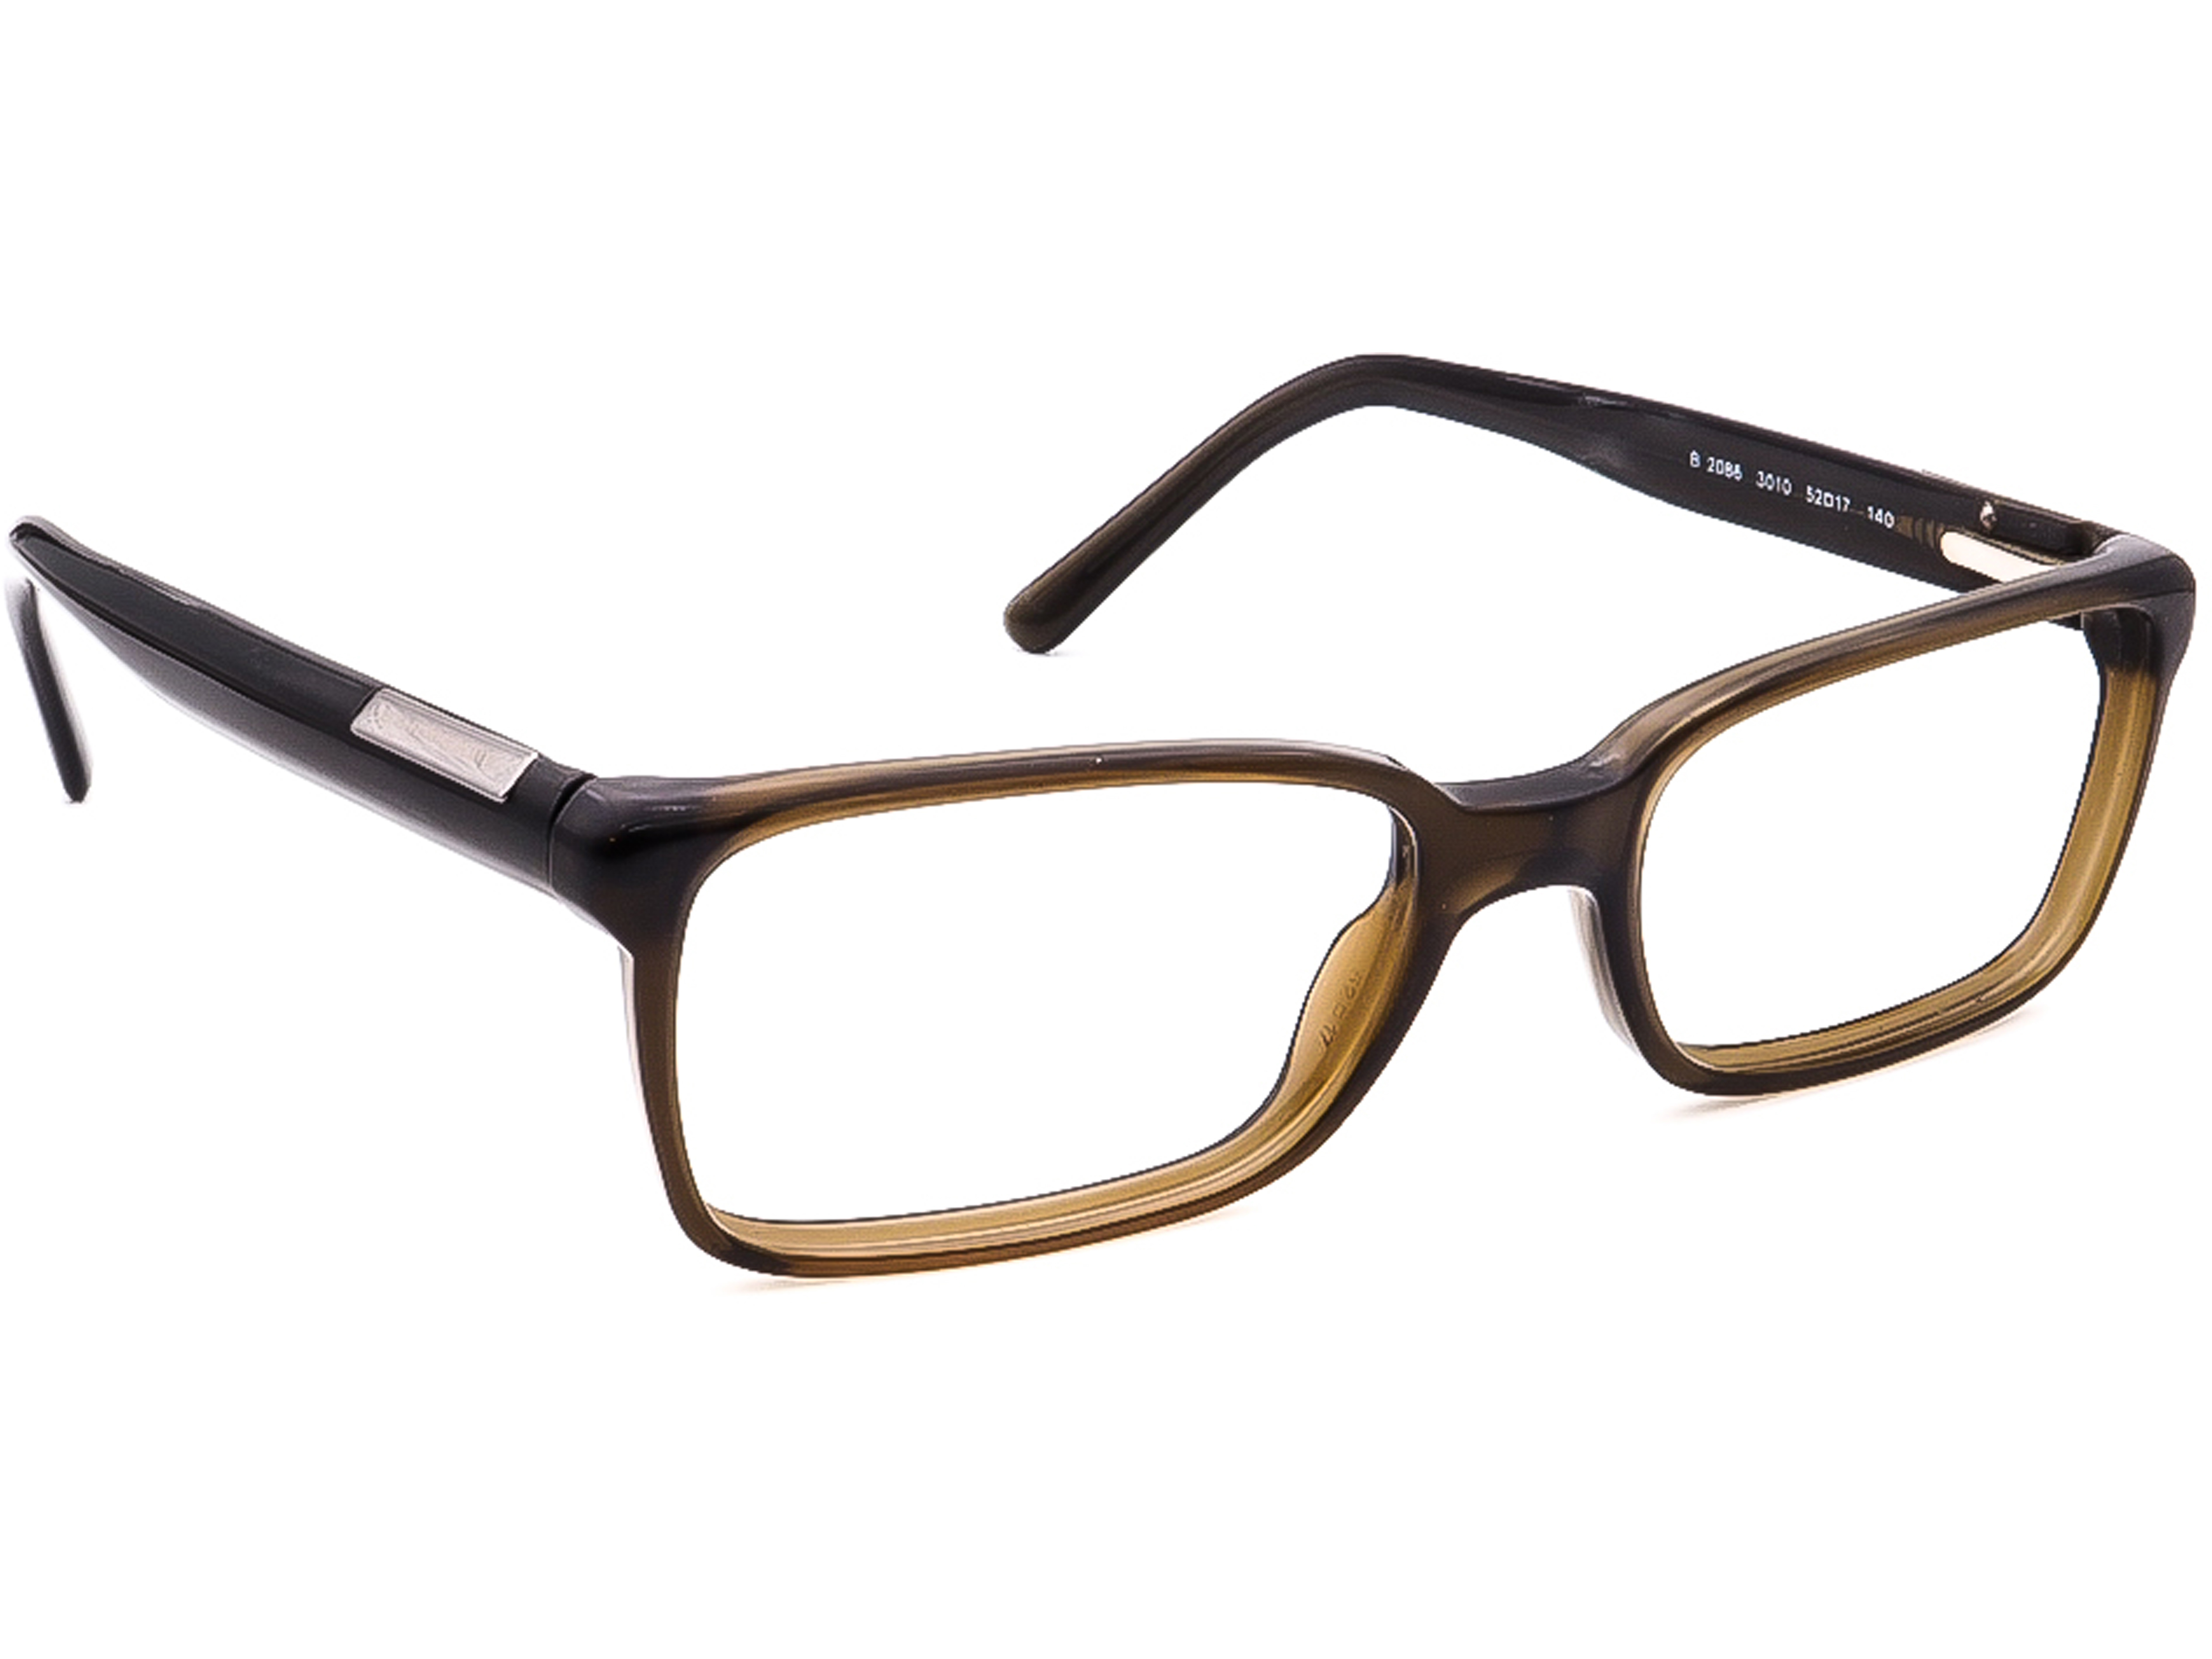 Burberry B 2086 3010 Eyeglasses